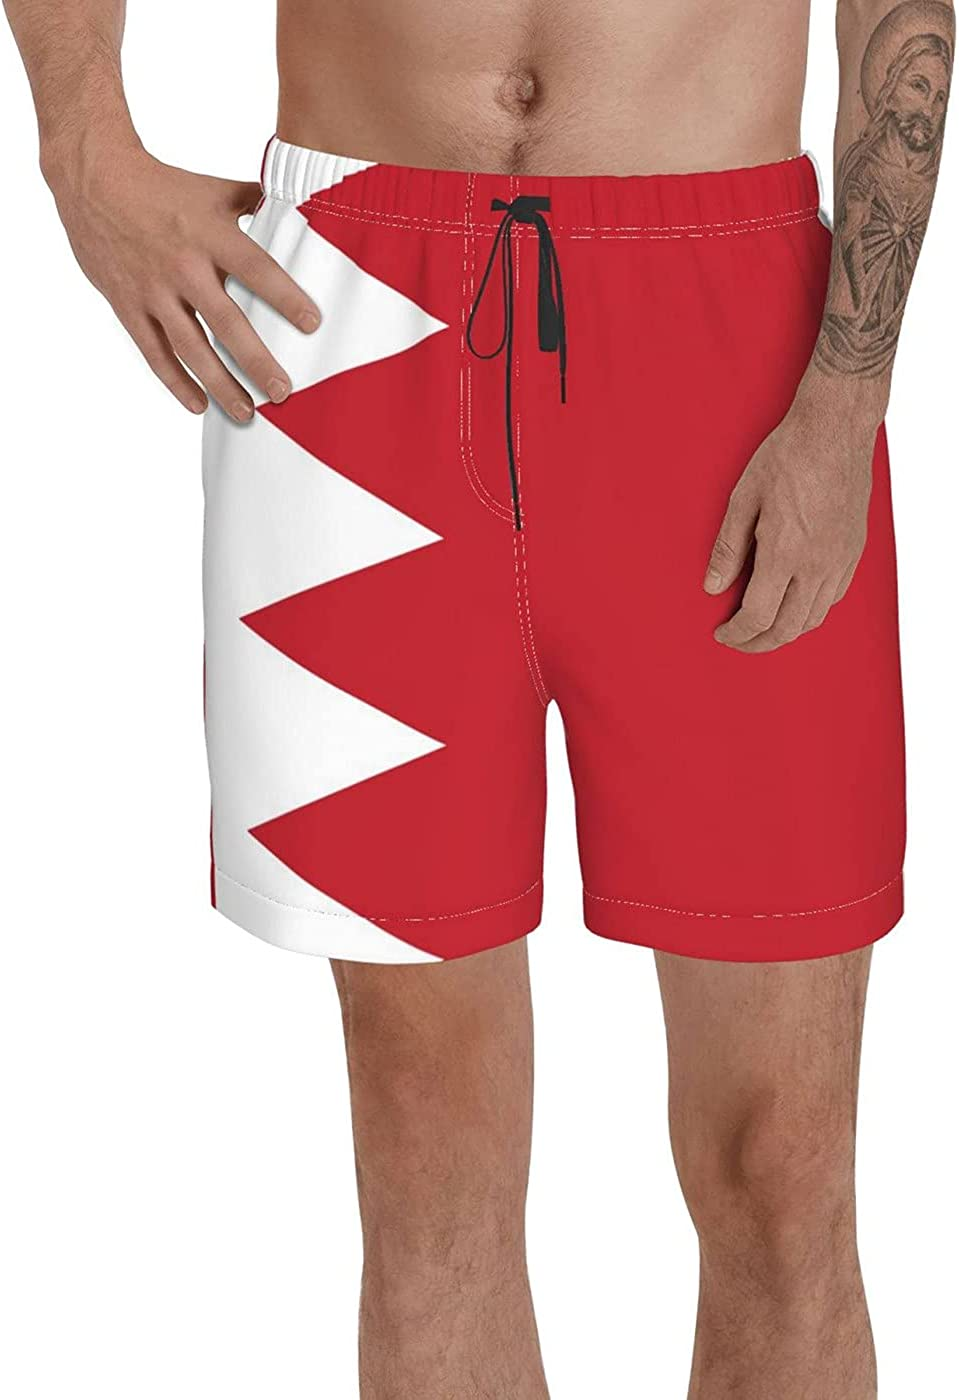 Count Bahrain Flag Men's 3D Printed Funny Summer Quick Dry Swim Short Board Shorts with